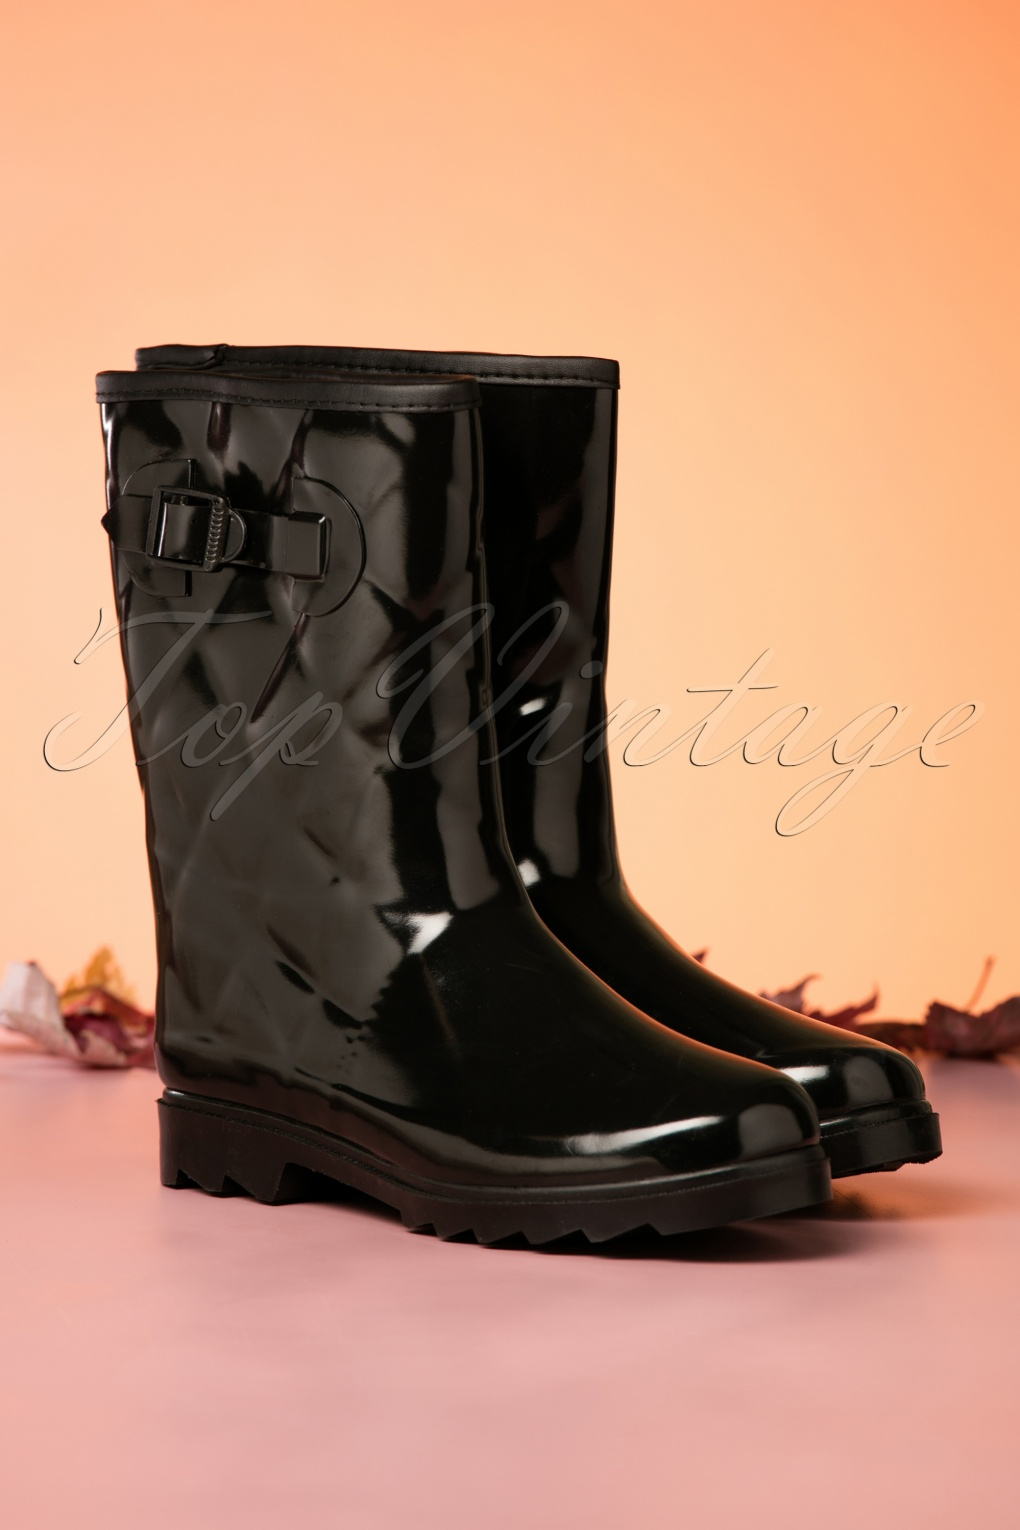 Vintage Boots, Retro Boots 60s Lesley Quilted Rain Boots in Black £31.63 AT vintagedancer.com